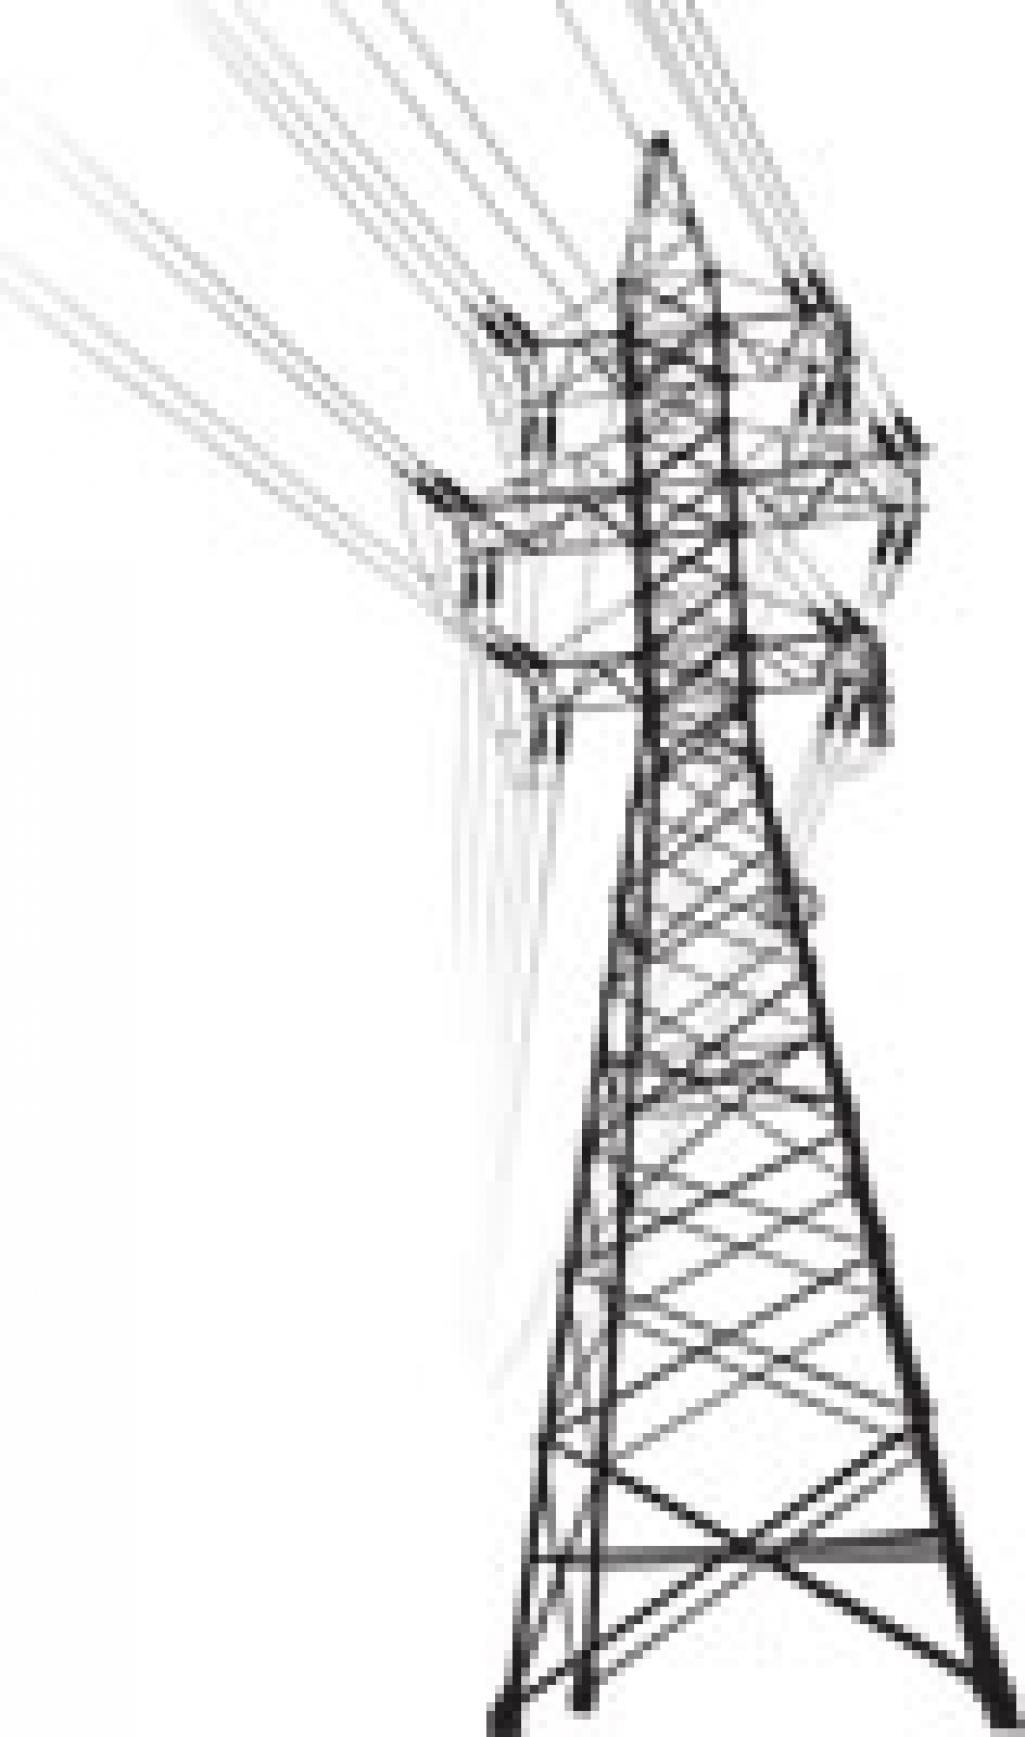 transmission line overhaul launched in rhode island and